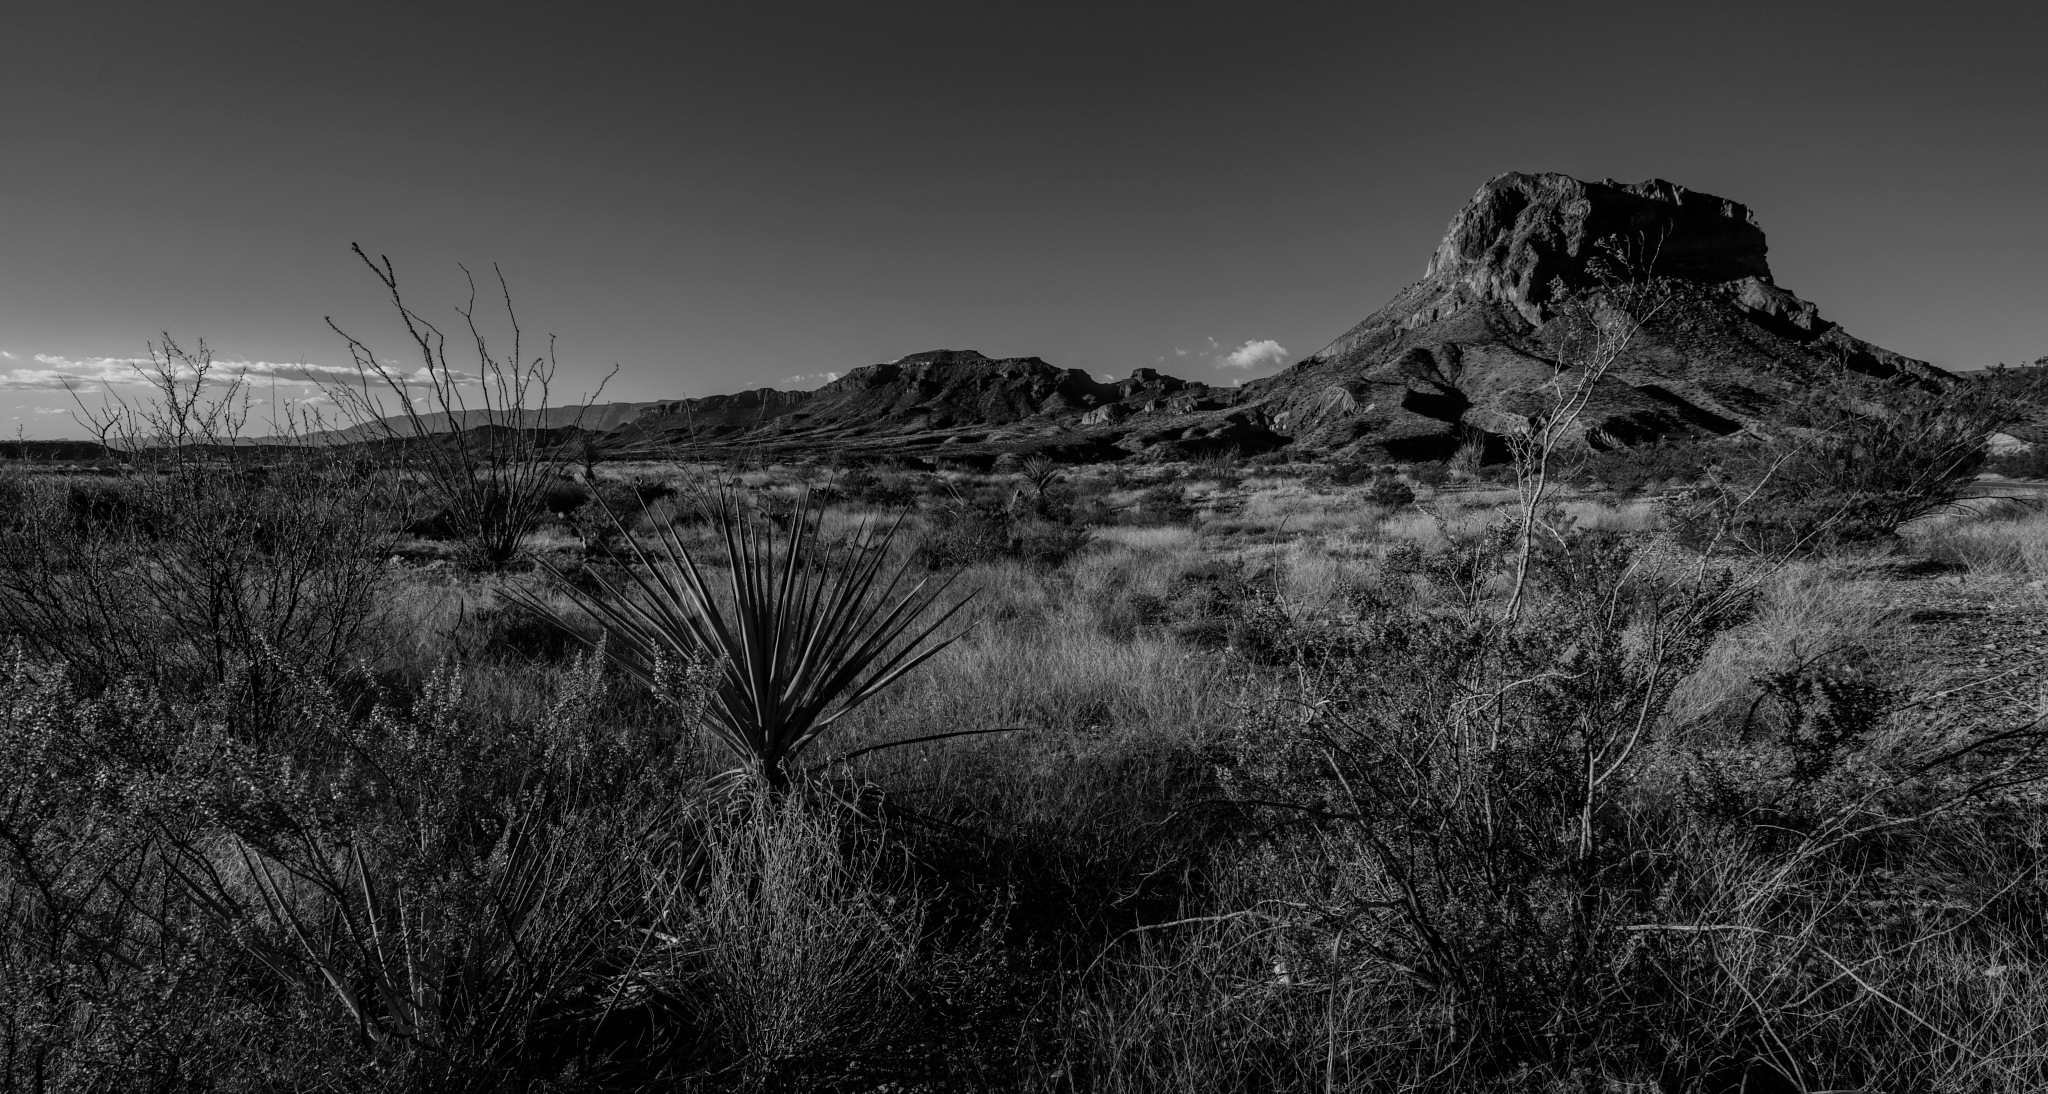 West Texas Hlls 2 by JohnEllingson